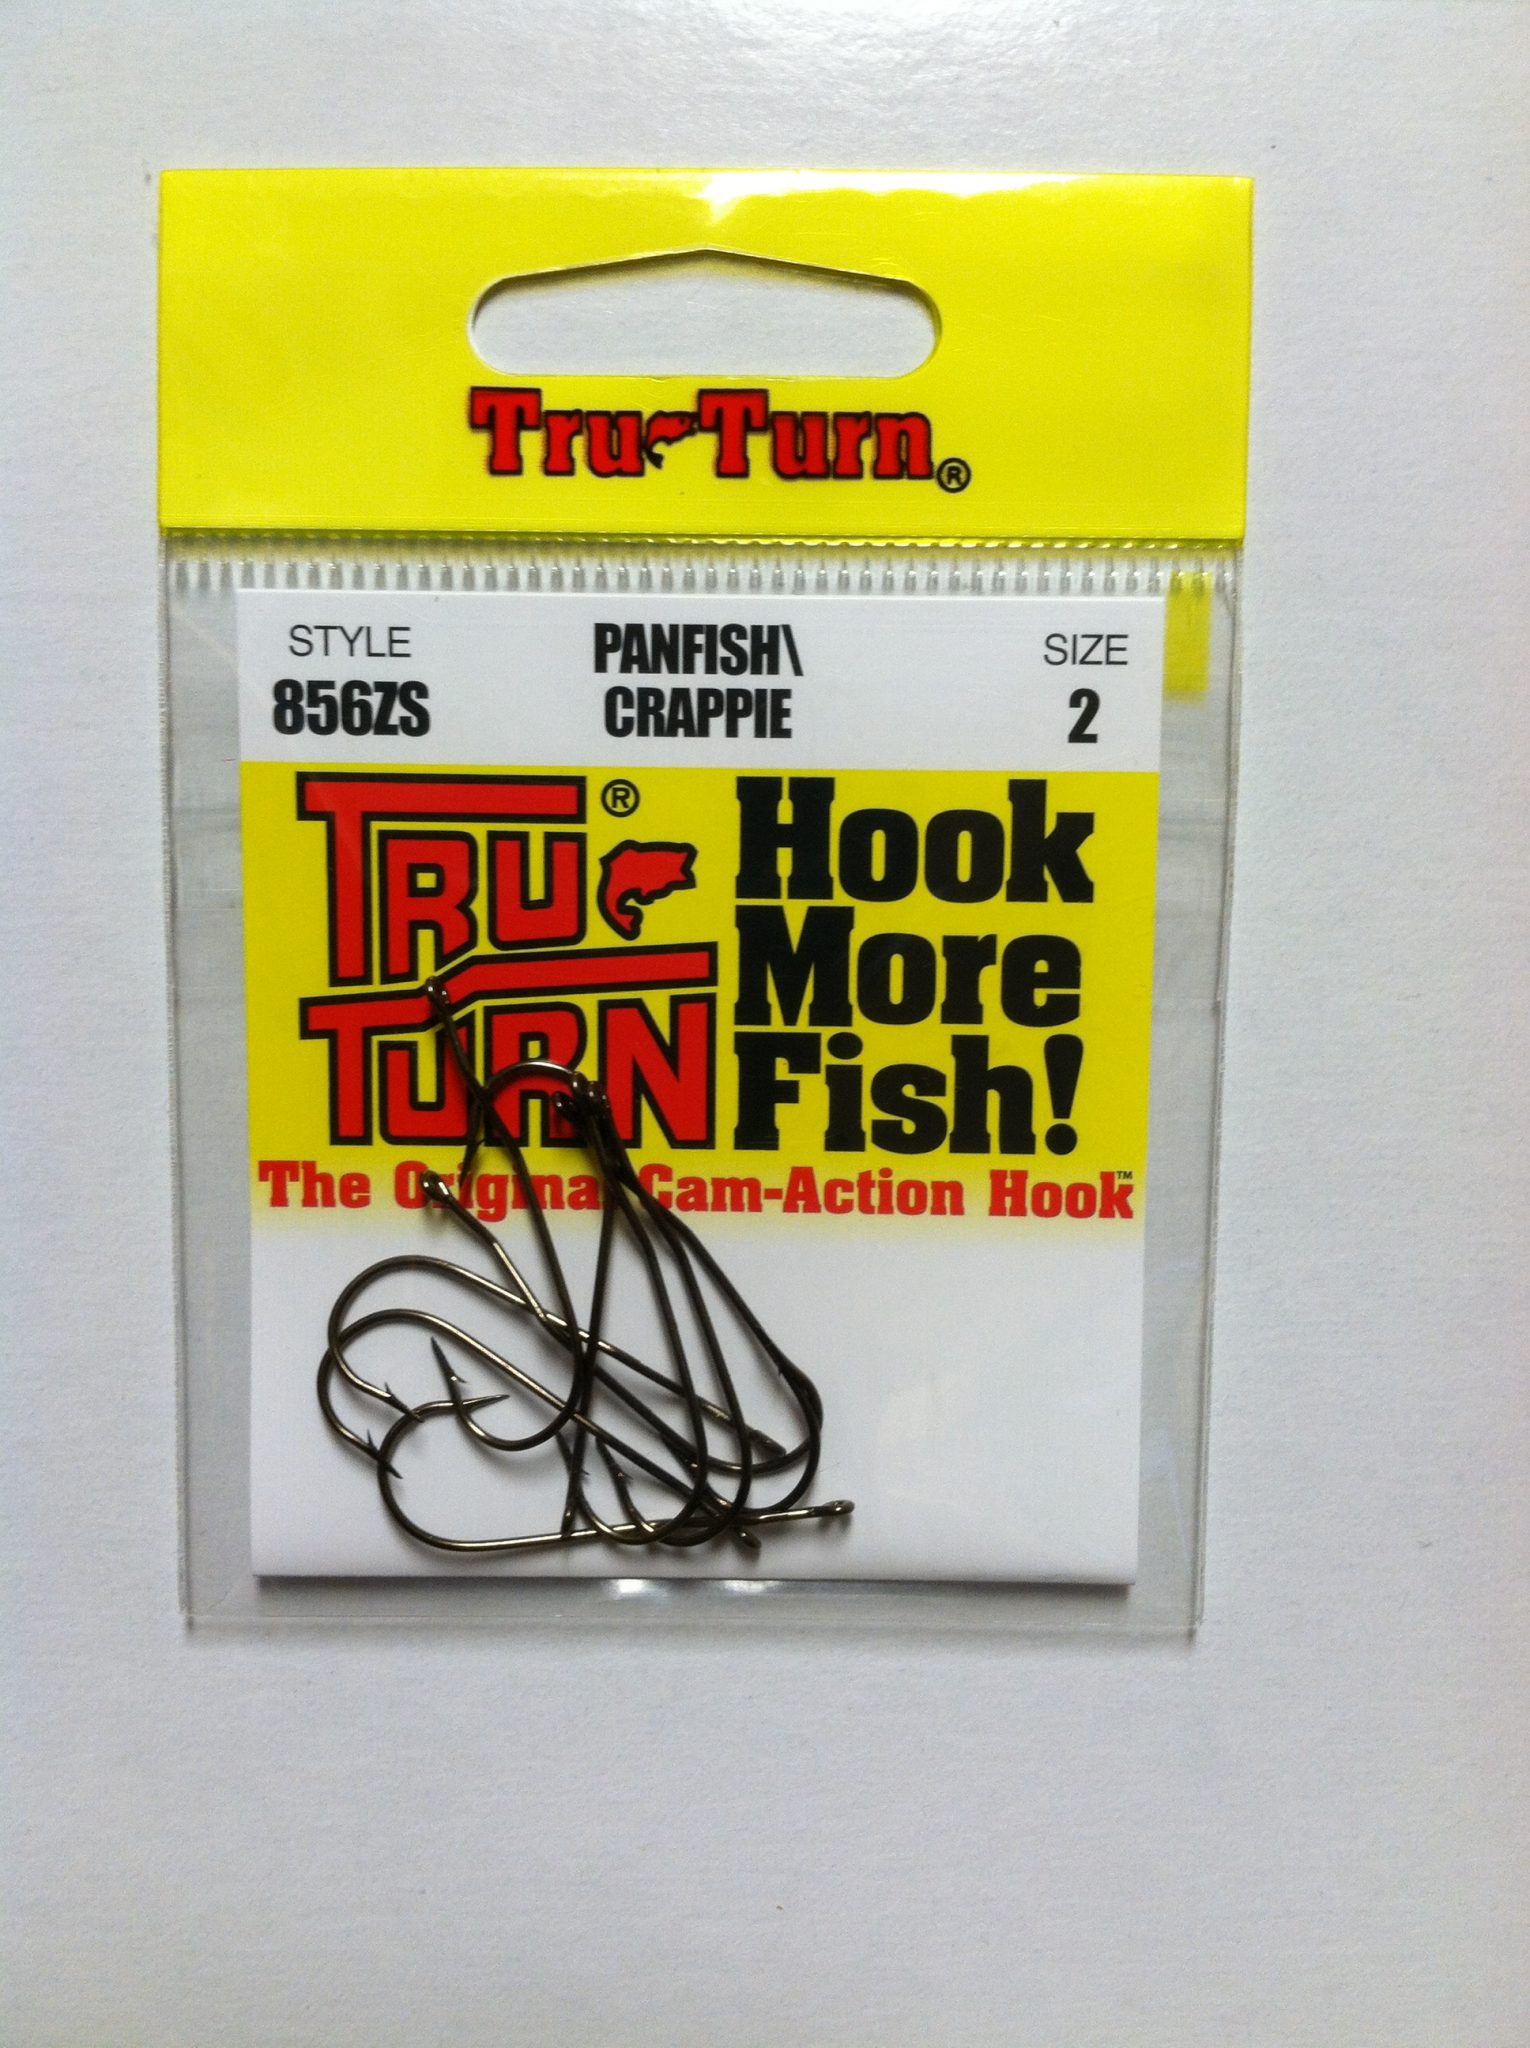 tru-turn aberdeen panfish/crappie hook 9 pk.